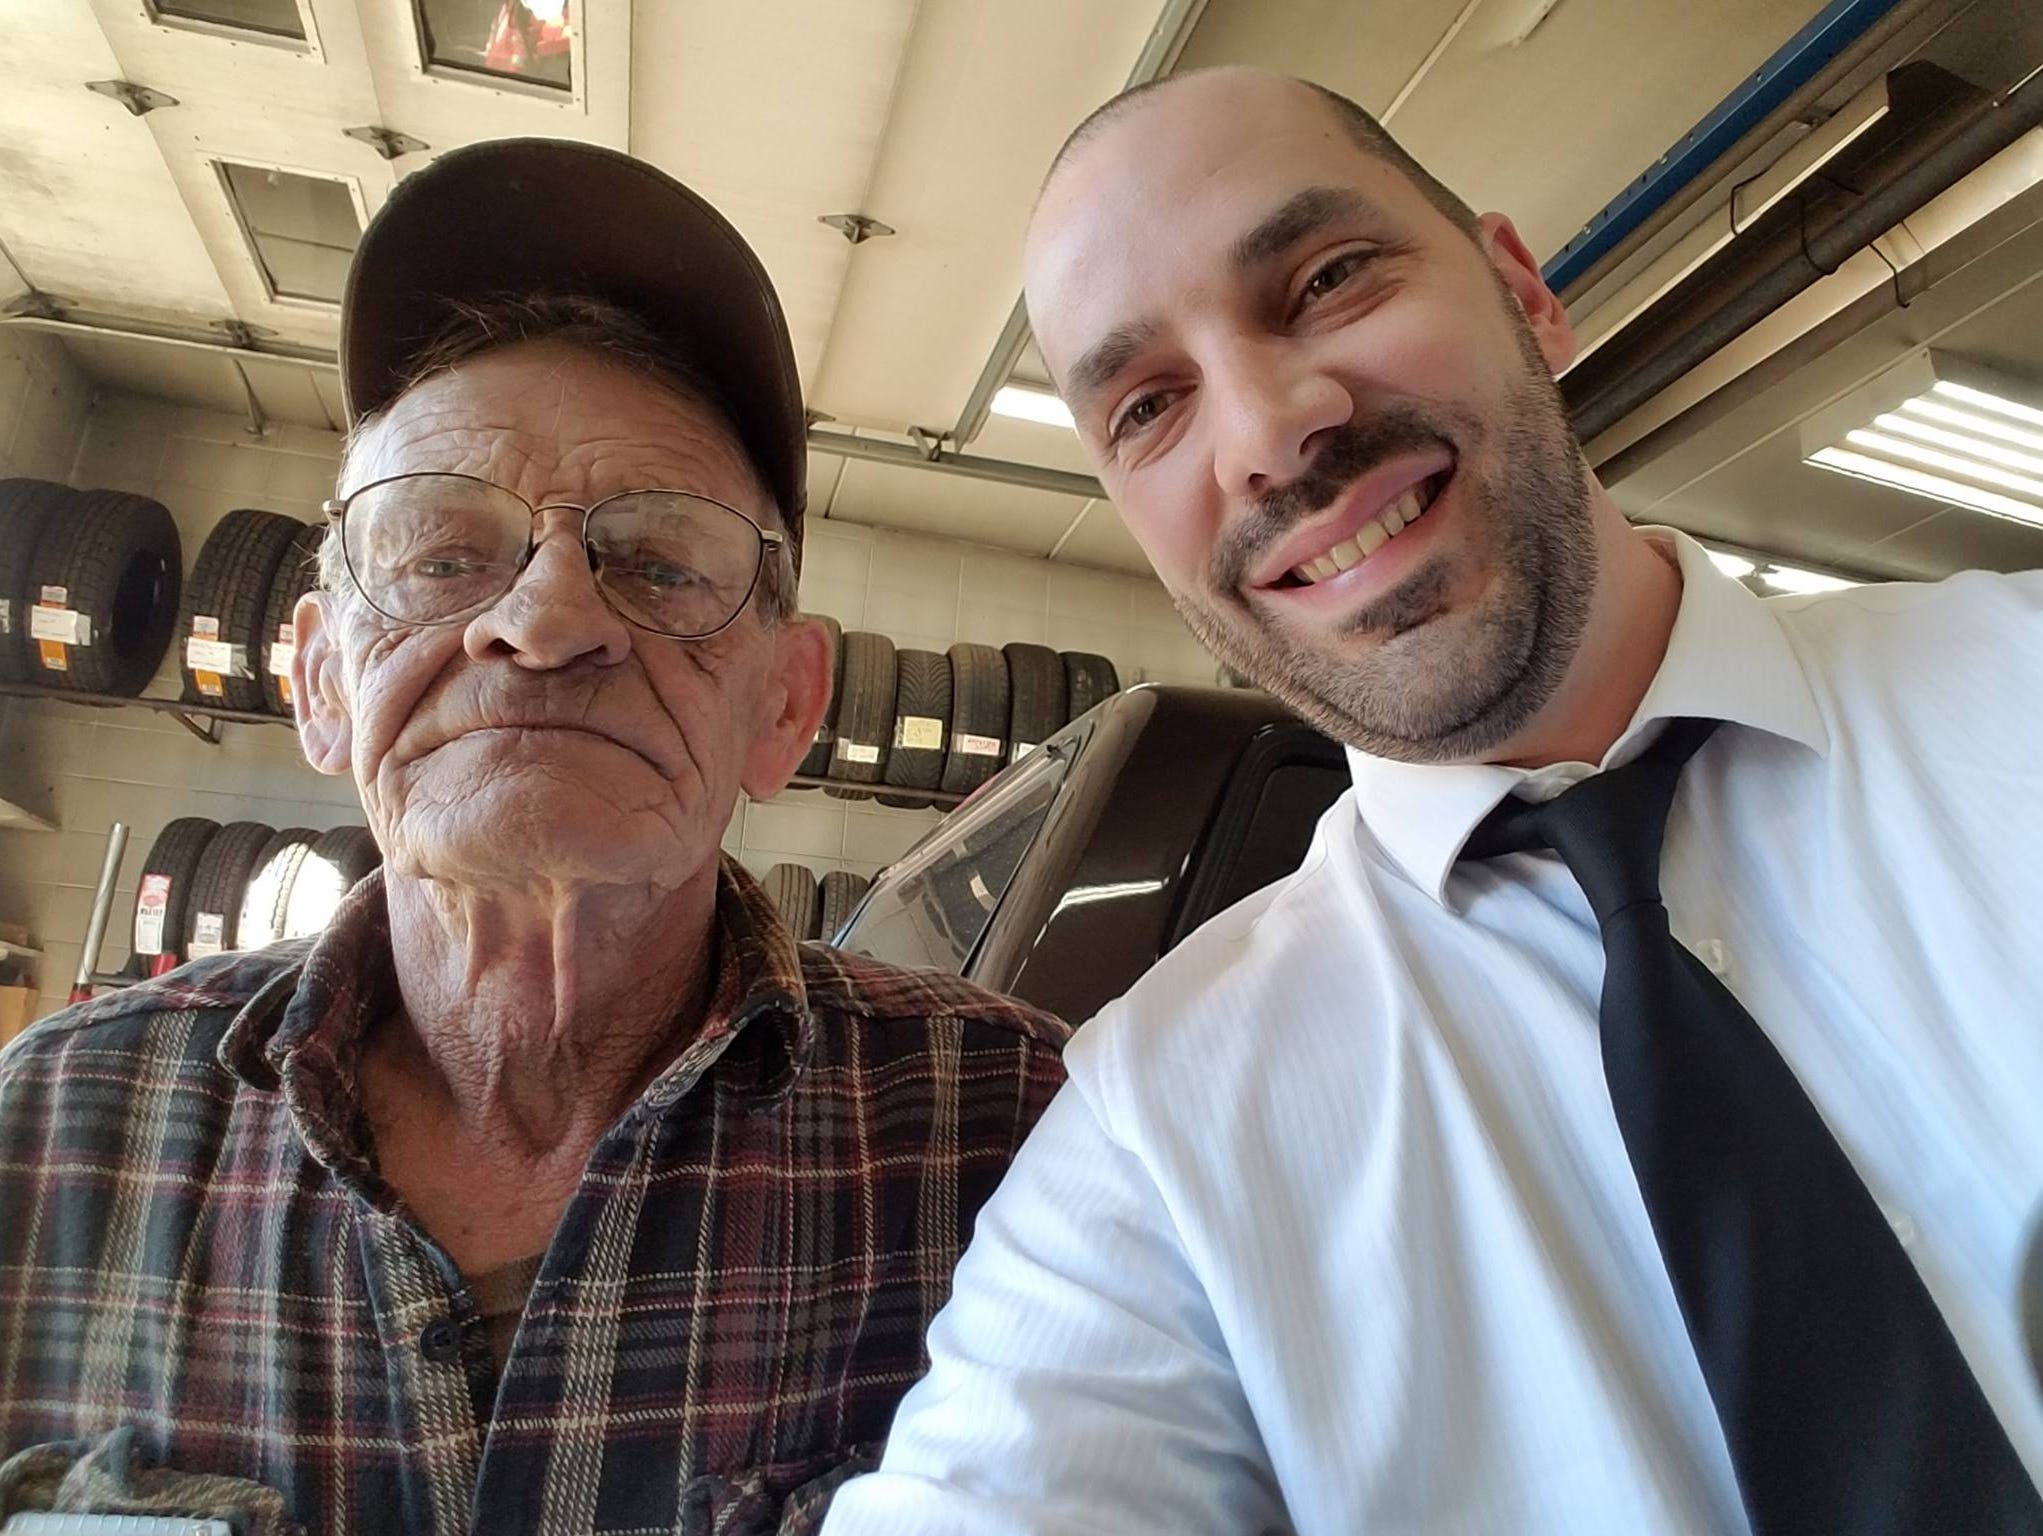 Small-town mechanic offers own truck to man stranded on way to funeral.